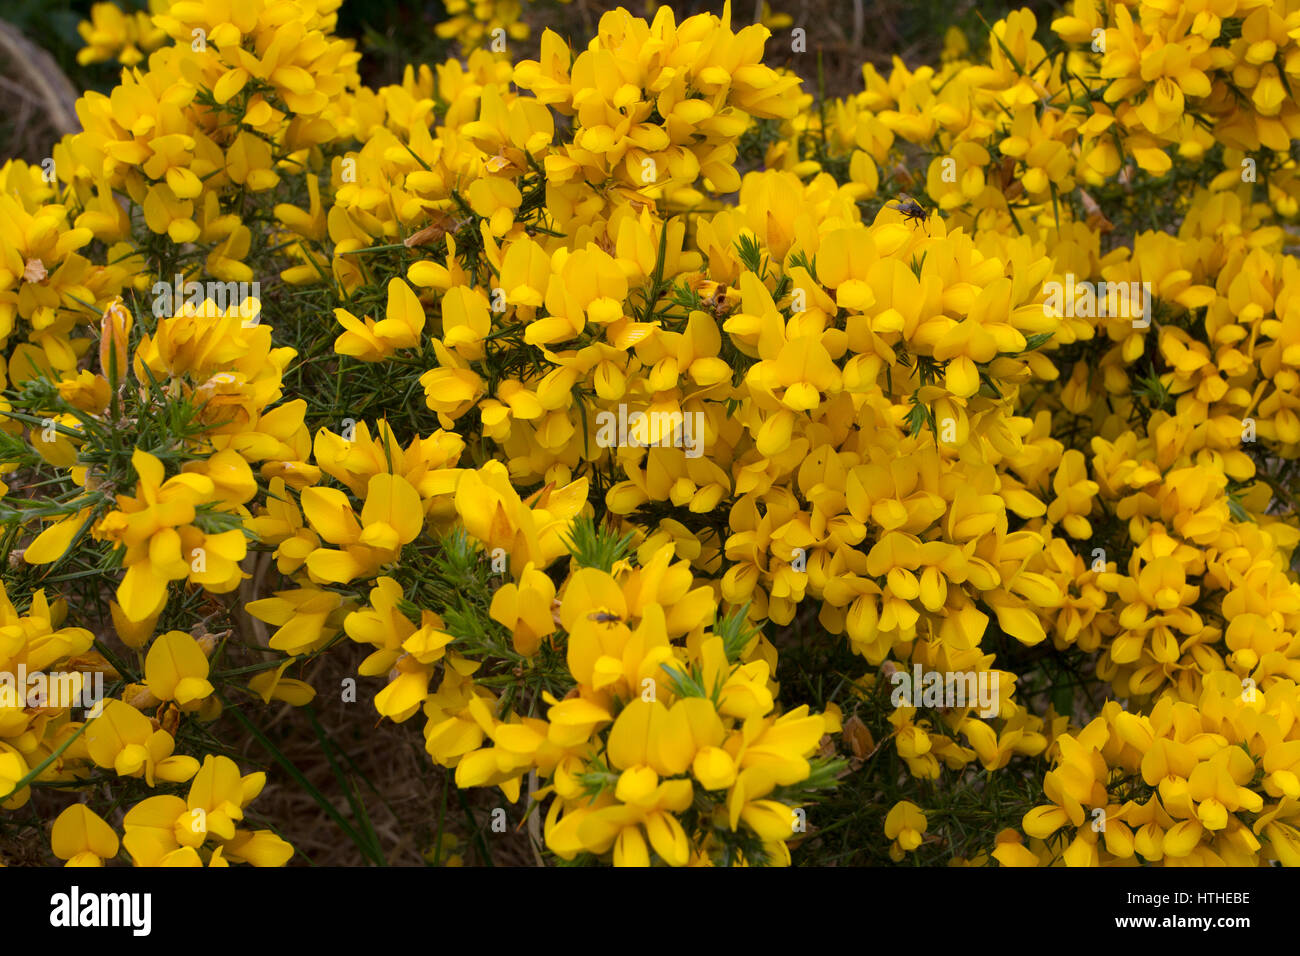 Mass Of Yellow Flowers Stock Photos Mass Of Yellow Flowers Stock